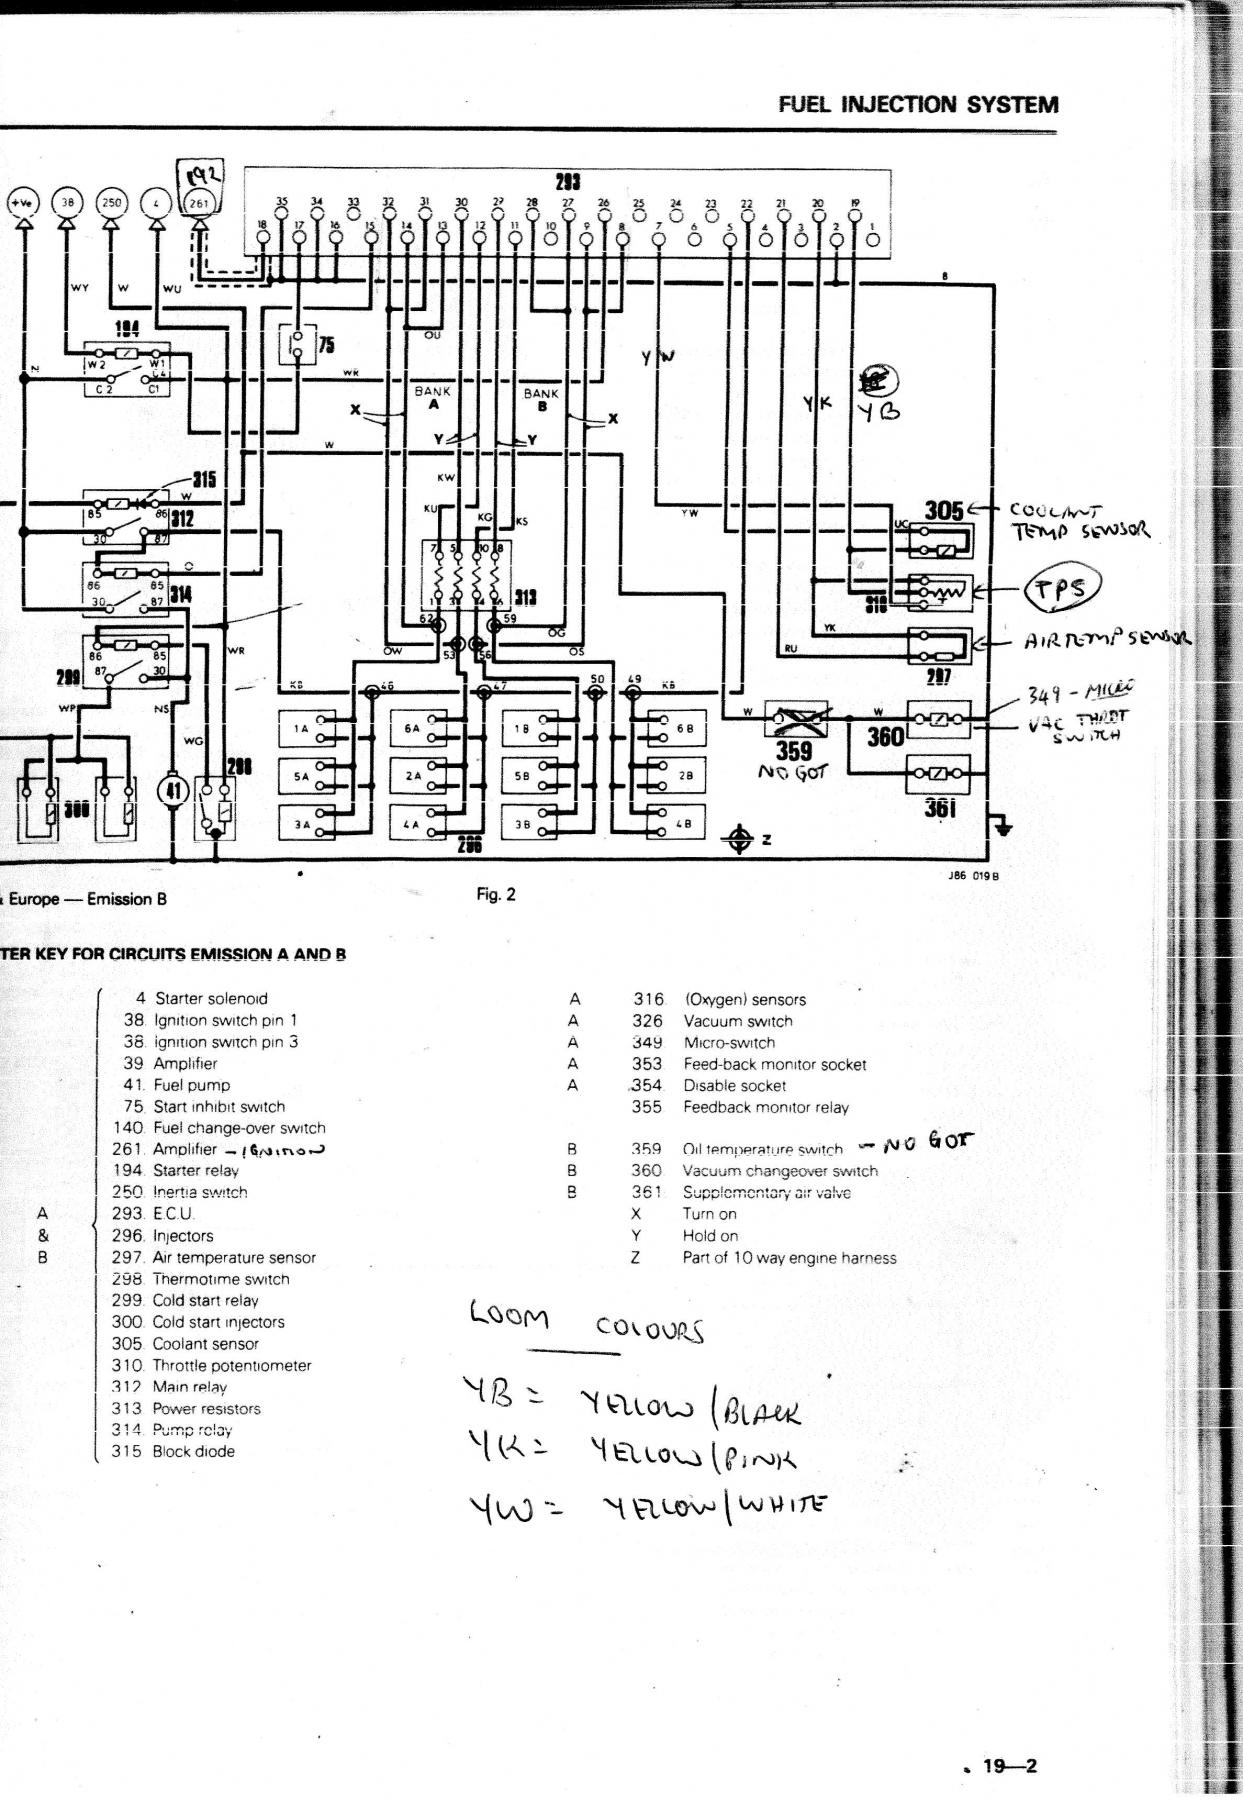 Jaguar Xj6 Fuel Pump Diagram Free Engine Image